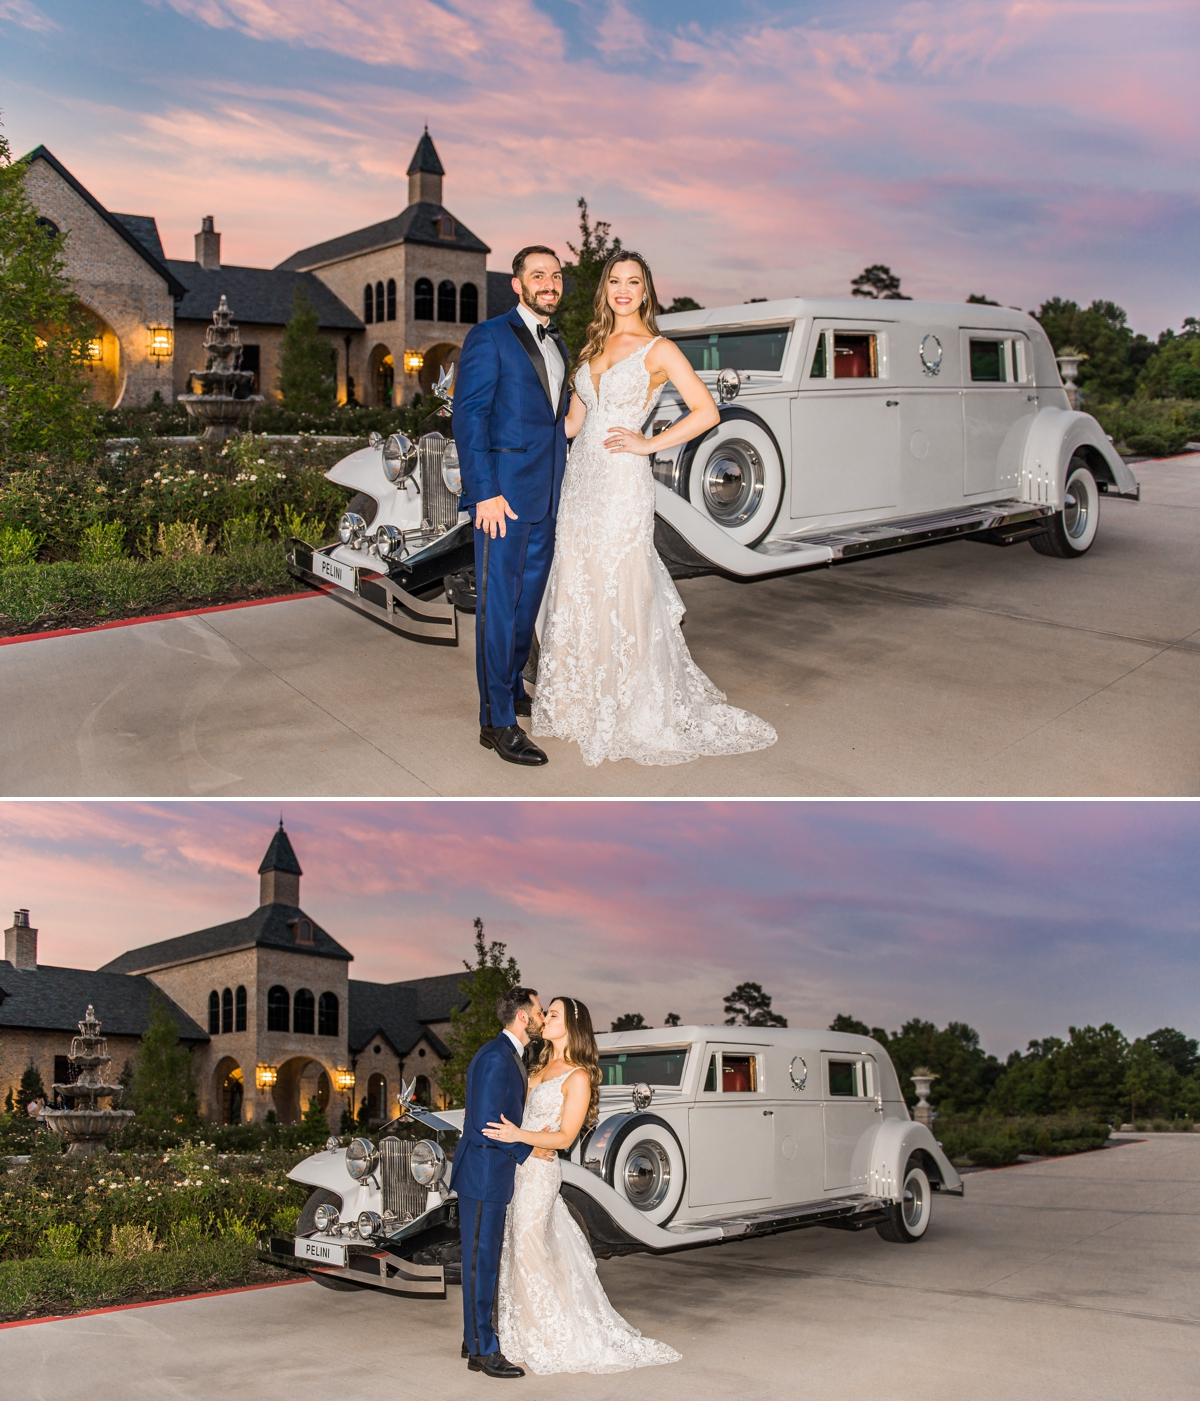 Sunset Portraits with getaway car